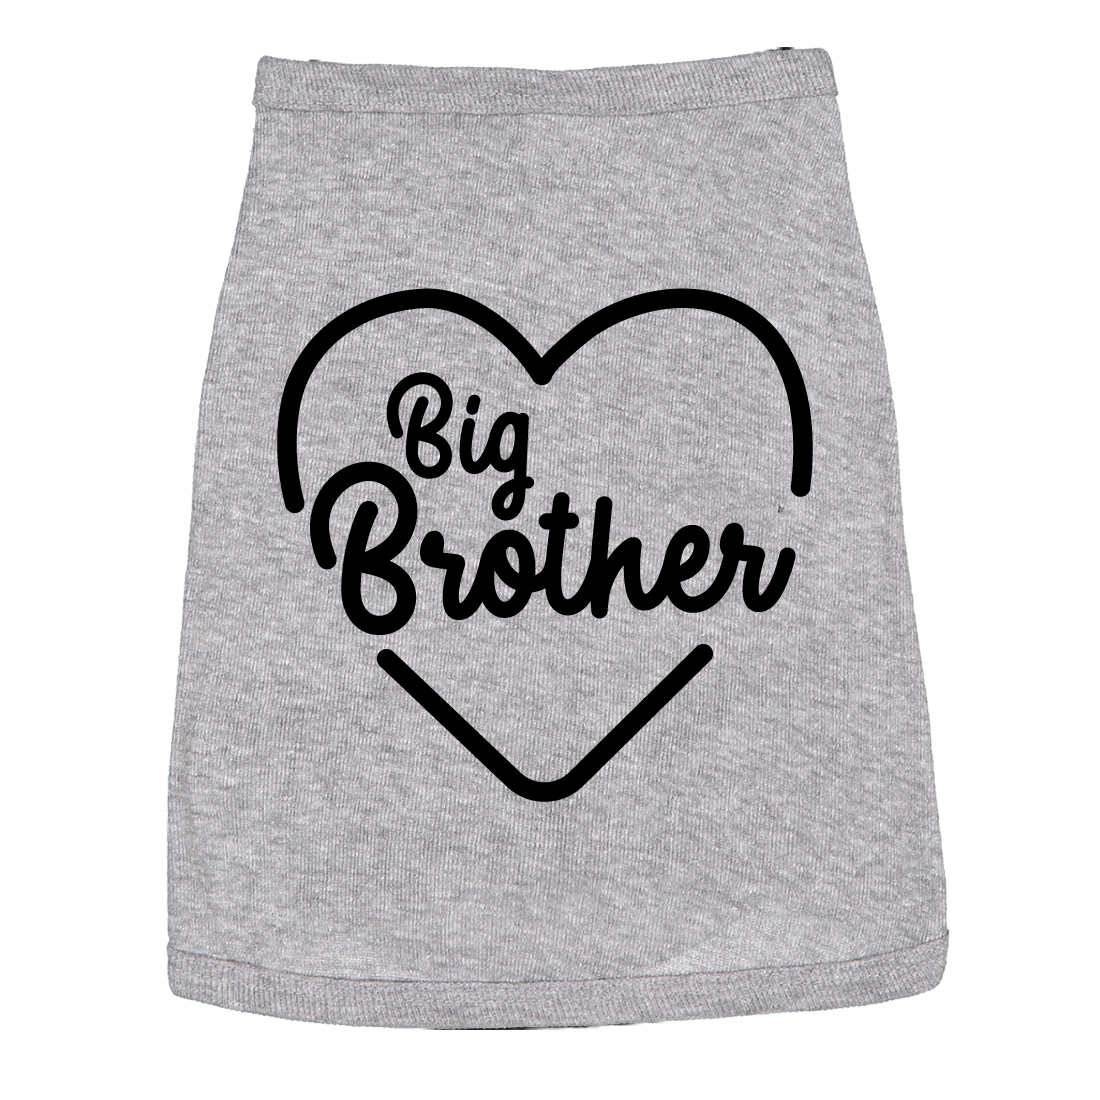 Dog Shirt Big Brother Cute Clothes For Family Pet